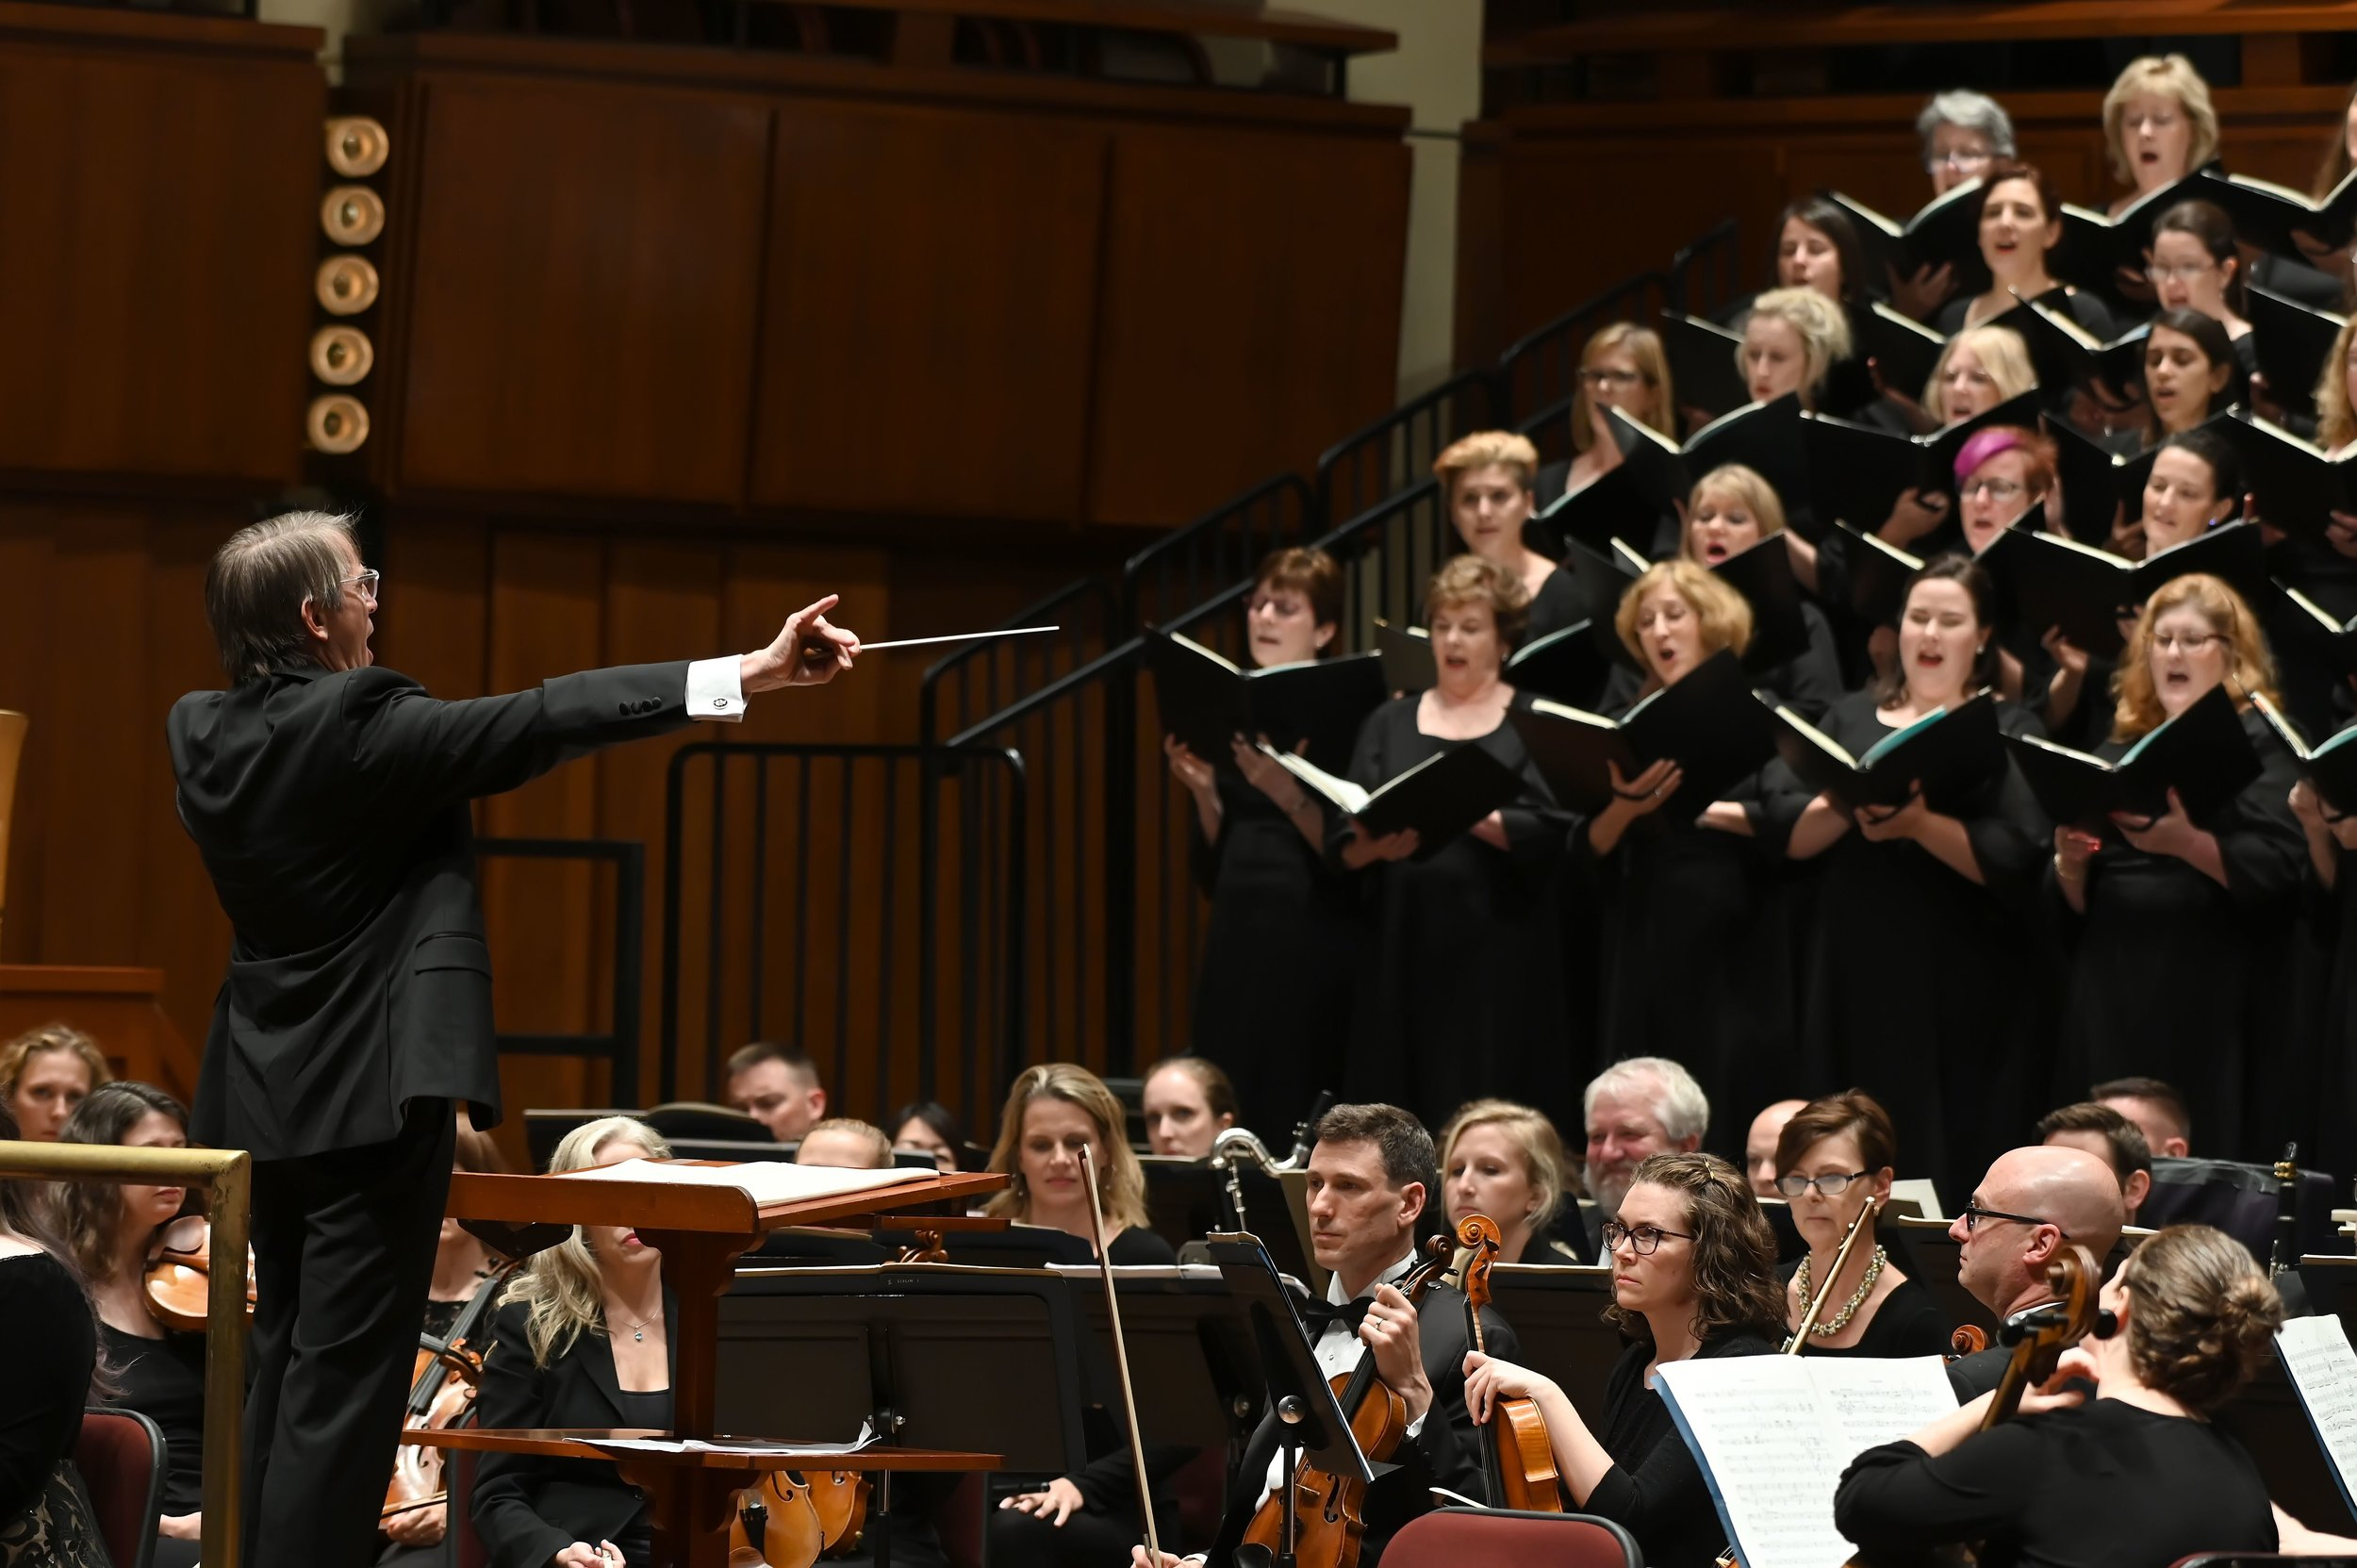 Conductor Scott Tucker facing the orchestra and chorus. Photo by Shannon Finney Photography; courtesy of The Choral Arts Society of Washington.